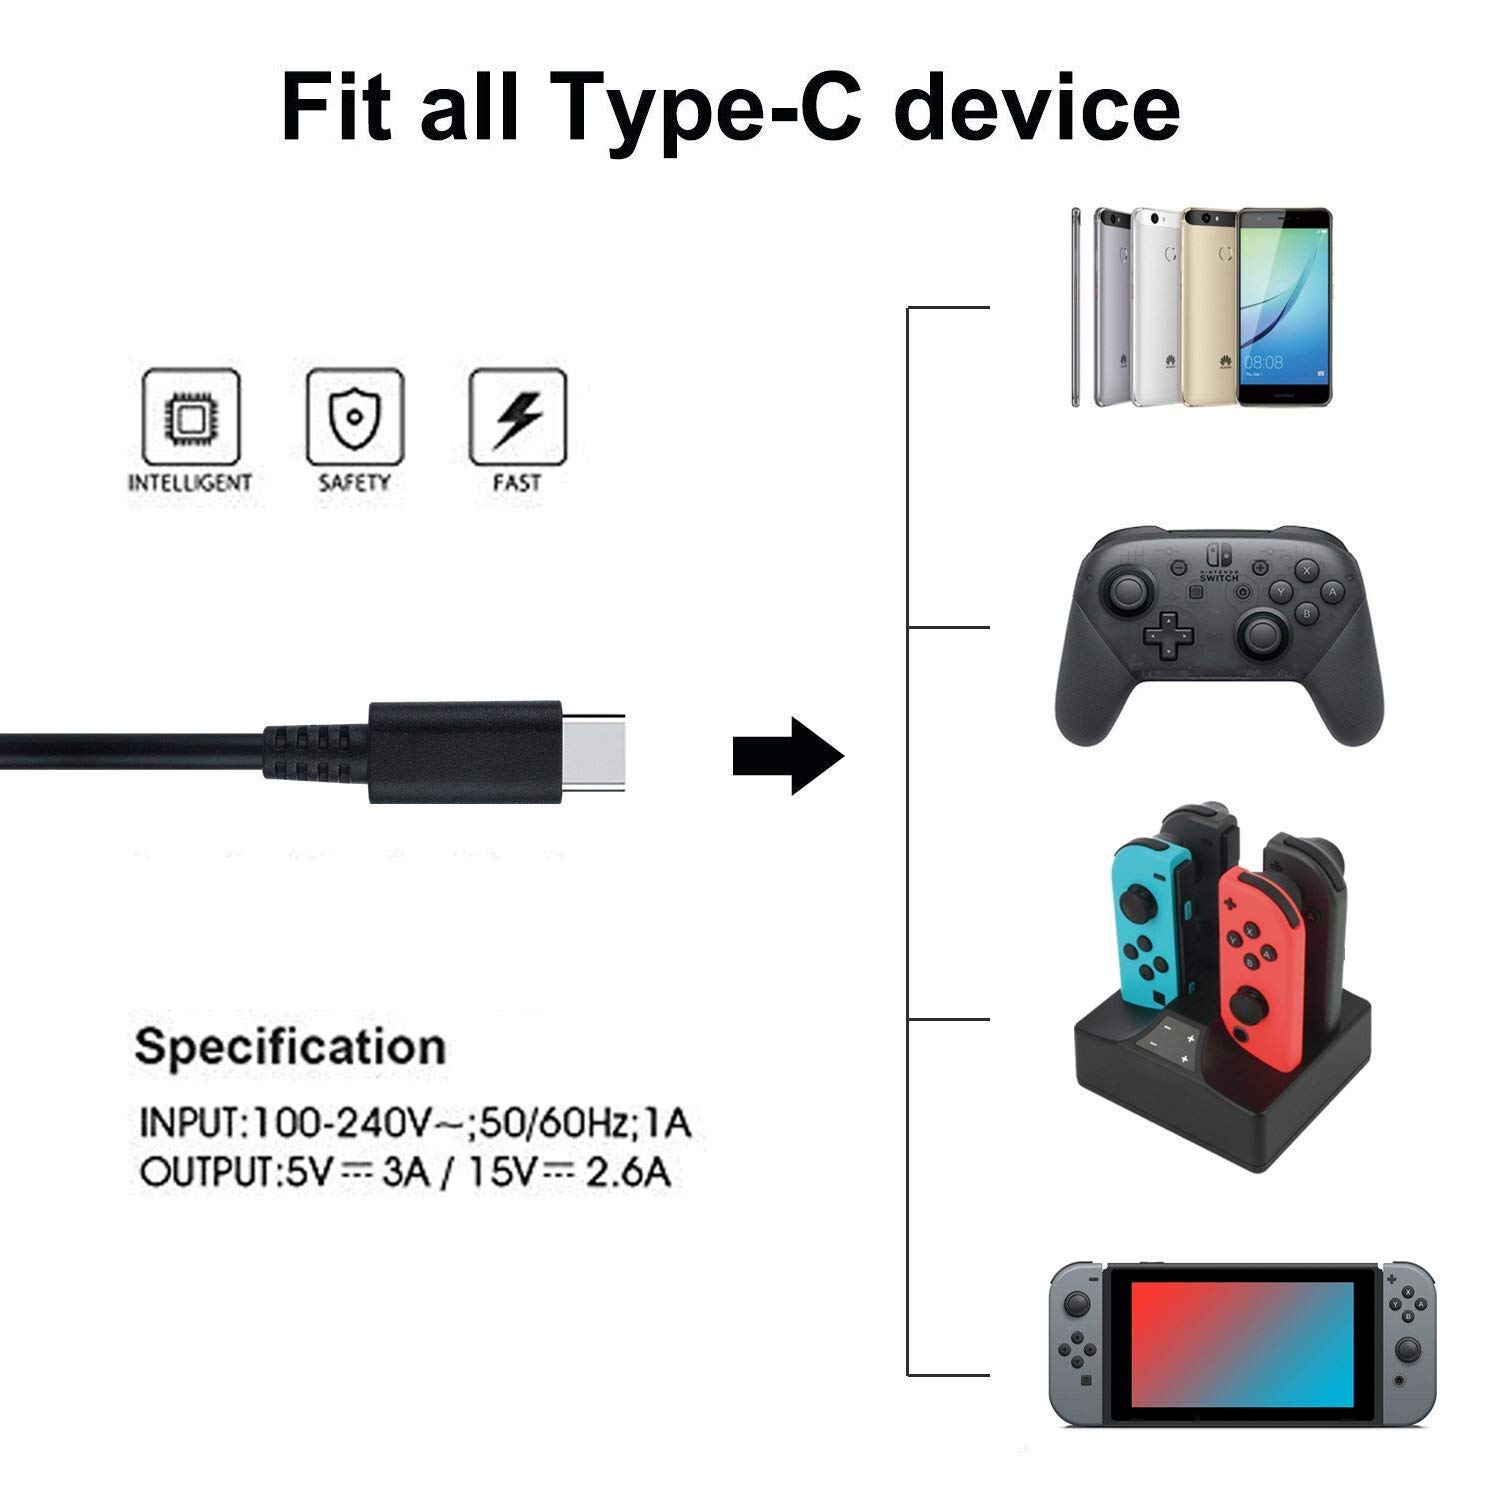 Switch Charger for Nintendo Switch, AC Power Supply Adapter Compatible with Nintendo Switch, 15V/2.6A Support TV Mode, Fast Charger for Nintendo Switch by pdobq (Image #2)